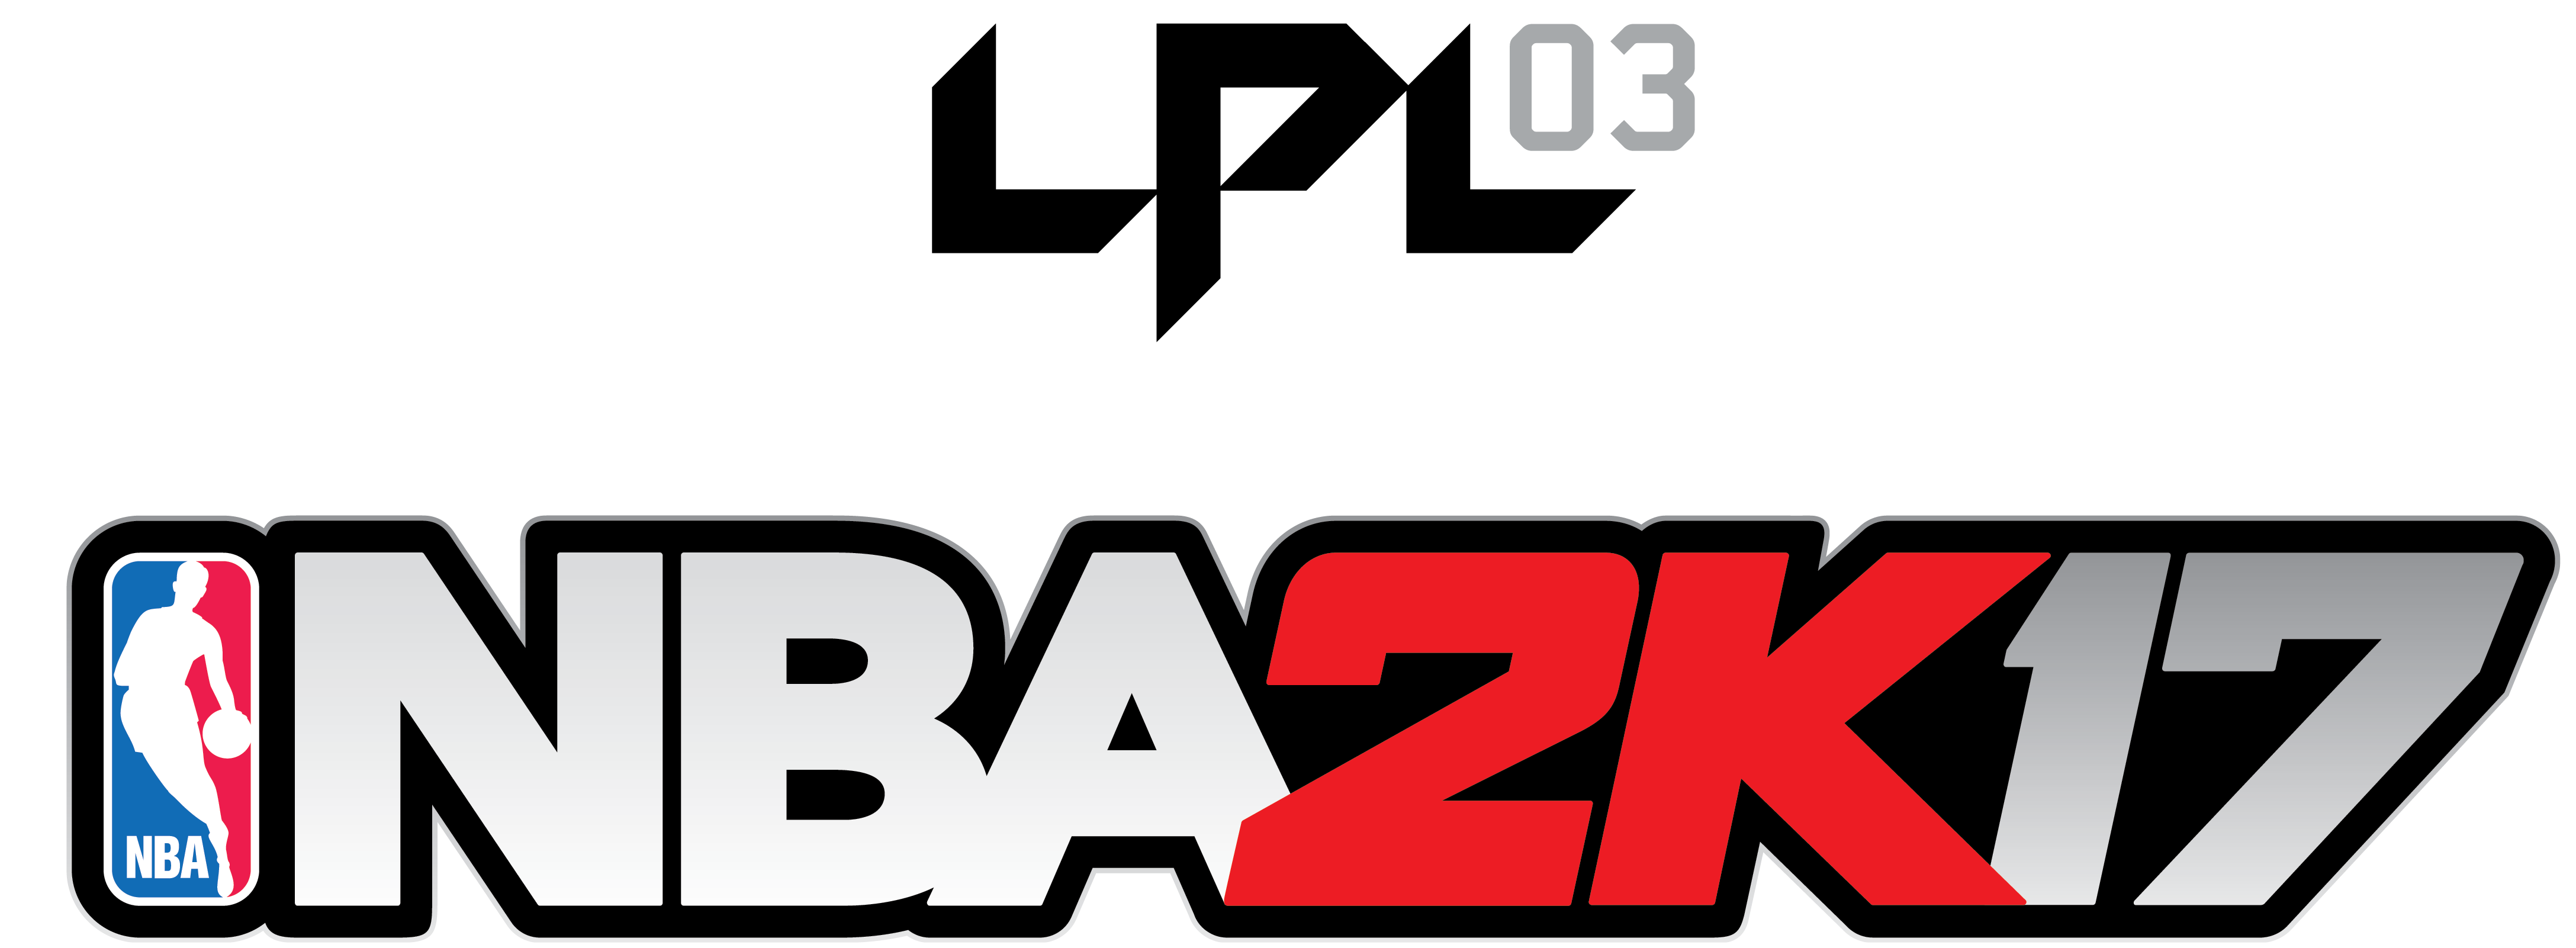 Nba 2k17 Png (102+ images in Collection) Page 2.